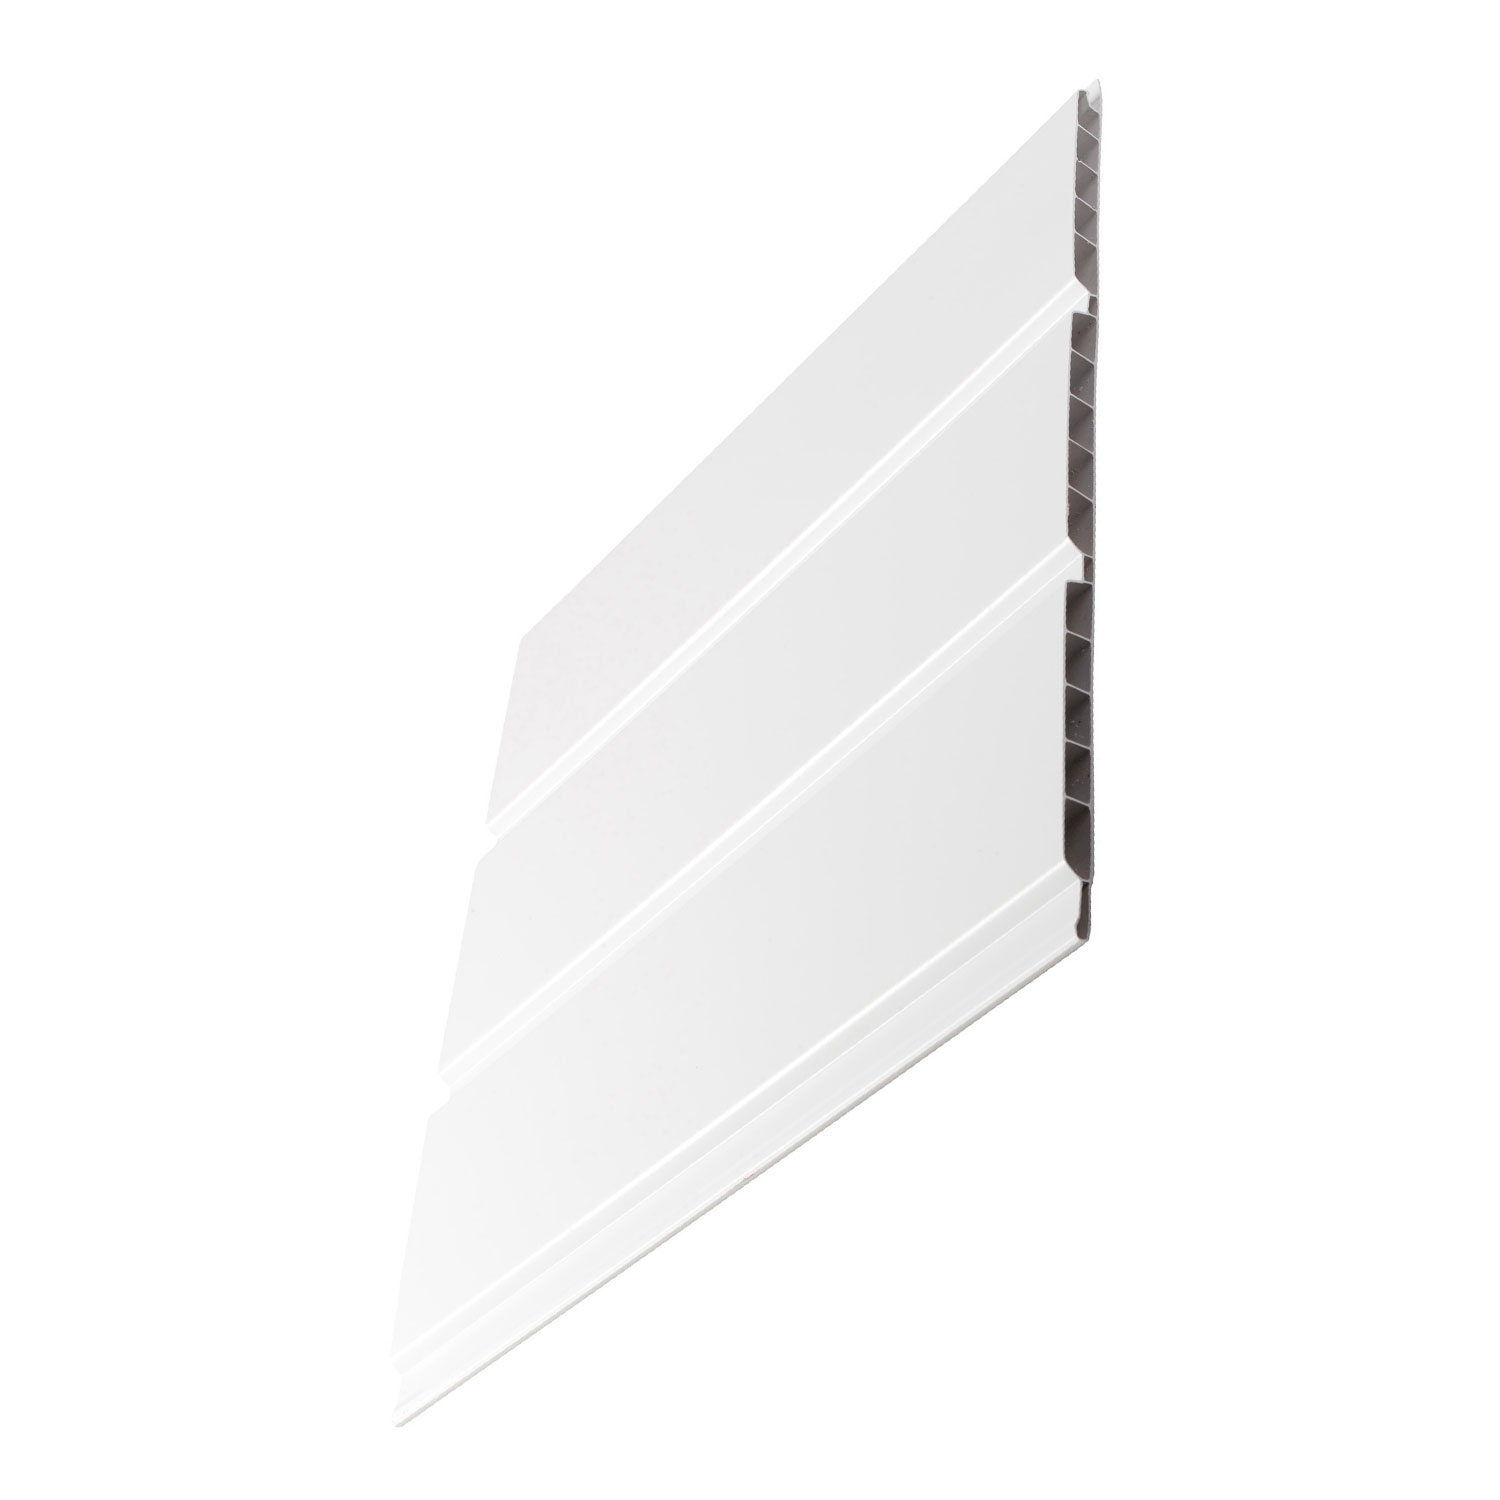 9mm White Hollow Soffit Boards